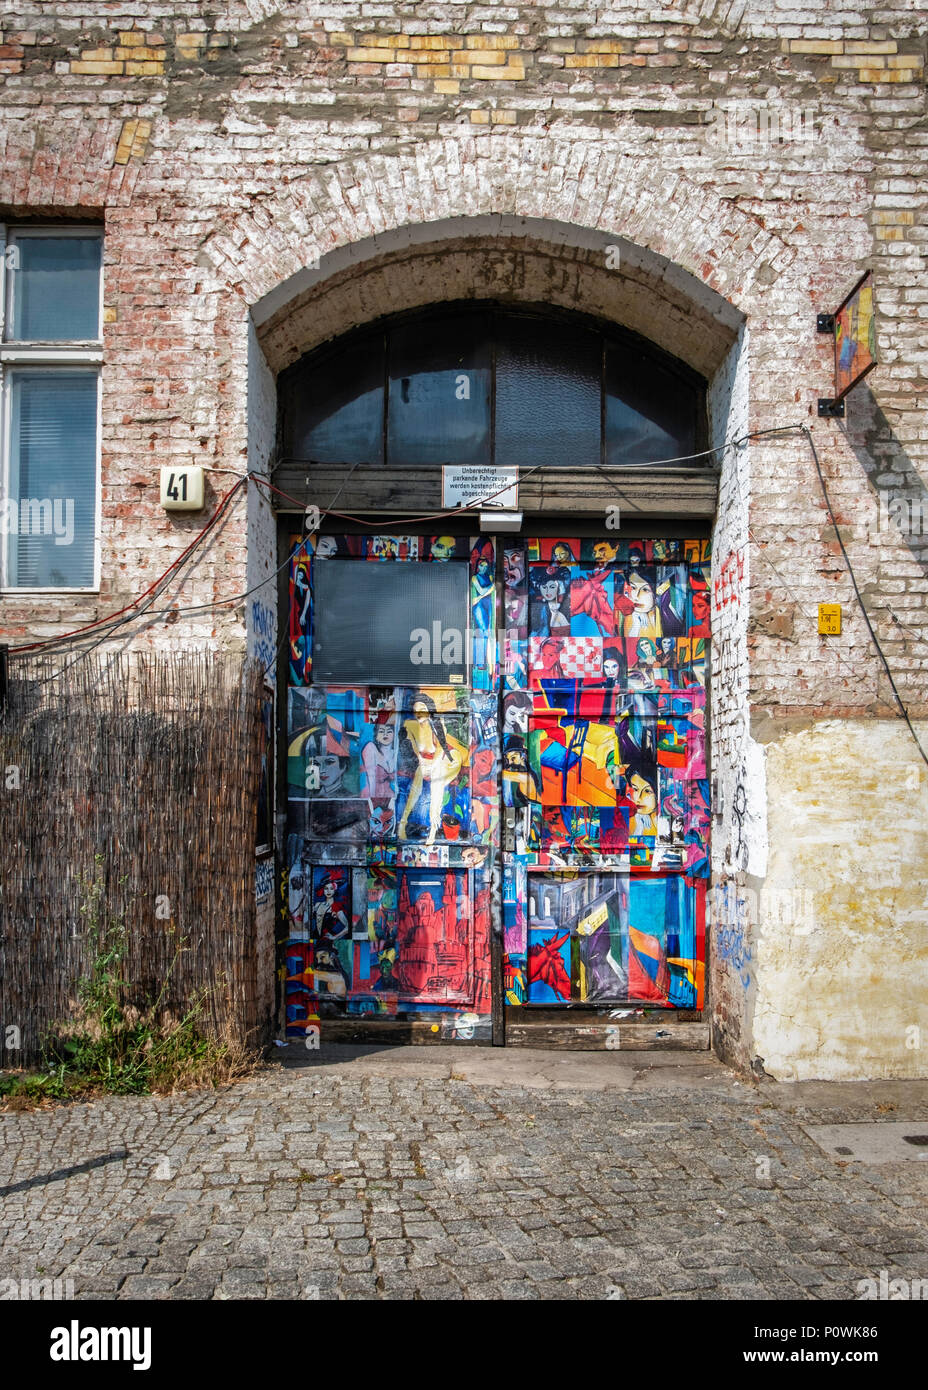 Berlin, Mitte, Oranienburger Straße 41. Colourful Entrance of old building with protected monument statue is home to the 'Ghost wall' legend  The Ghos - Stock Image